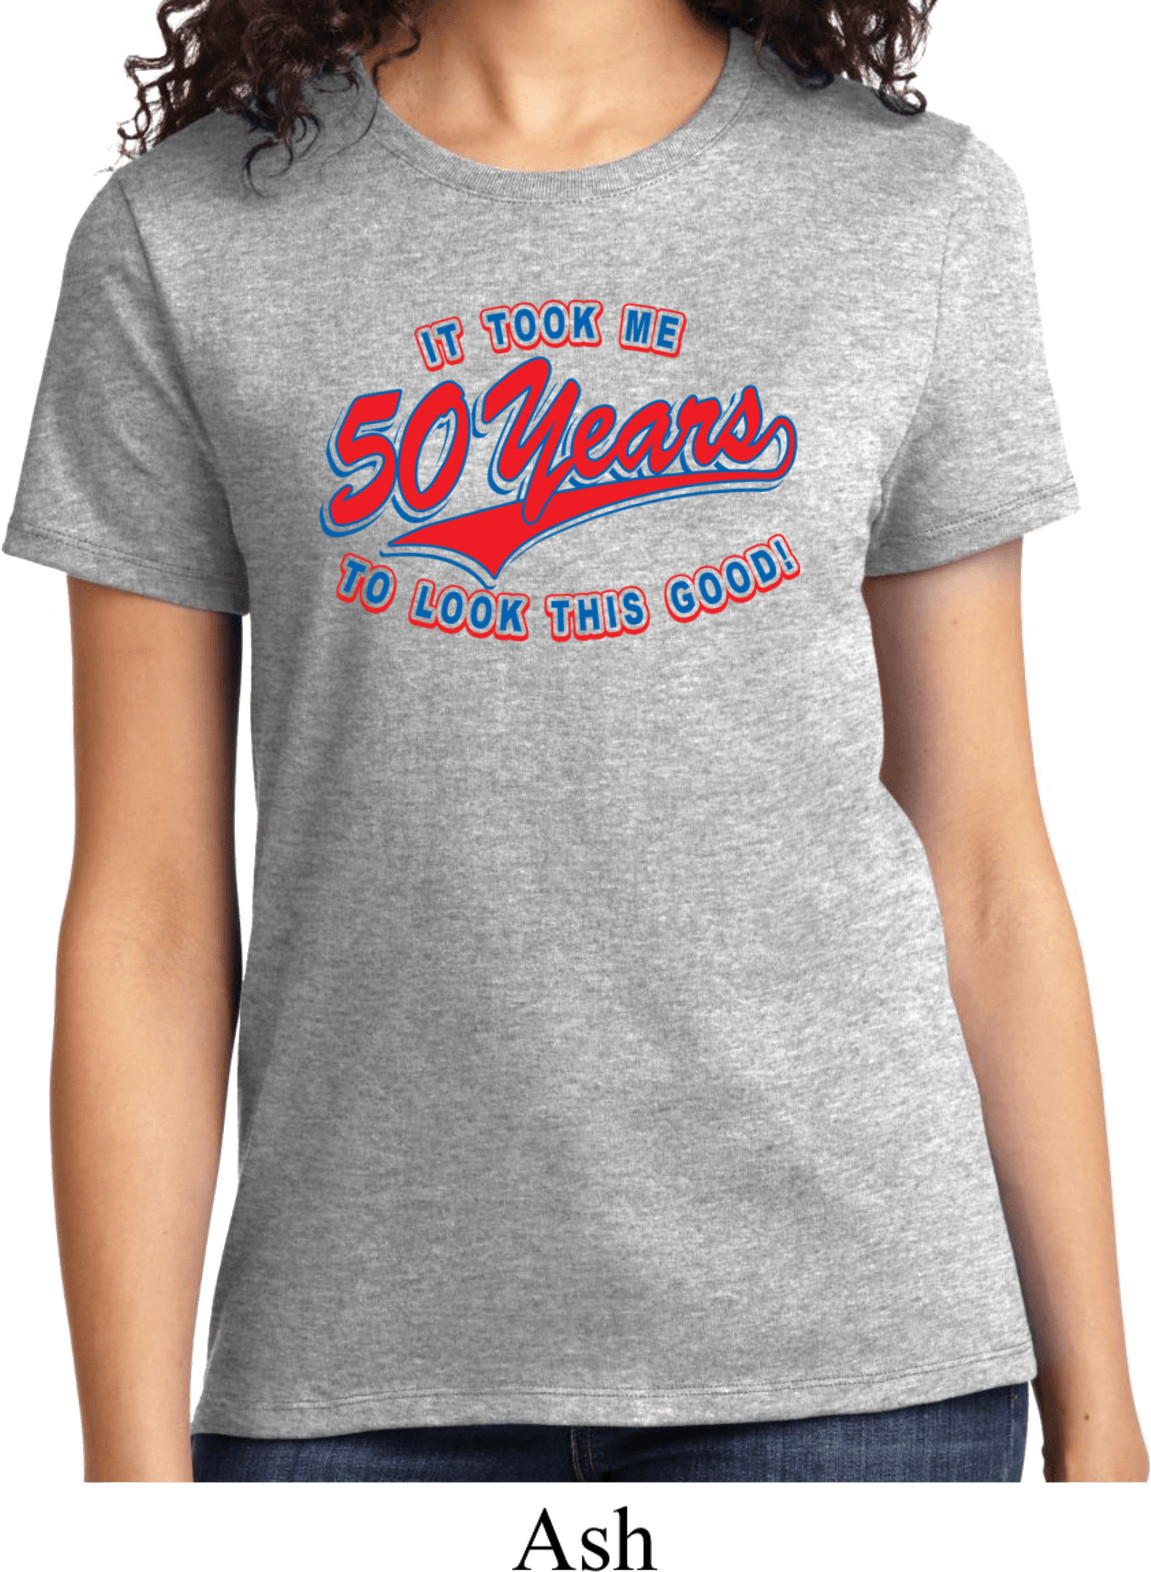 Best ideas about Funny Birthday T Shirts . Save or Pin La s Funny Birthday Shirt Took Me 50 Years Tee T Shirt Now.